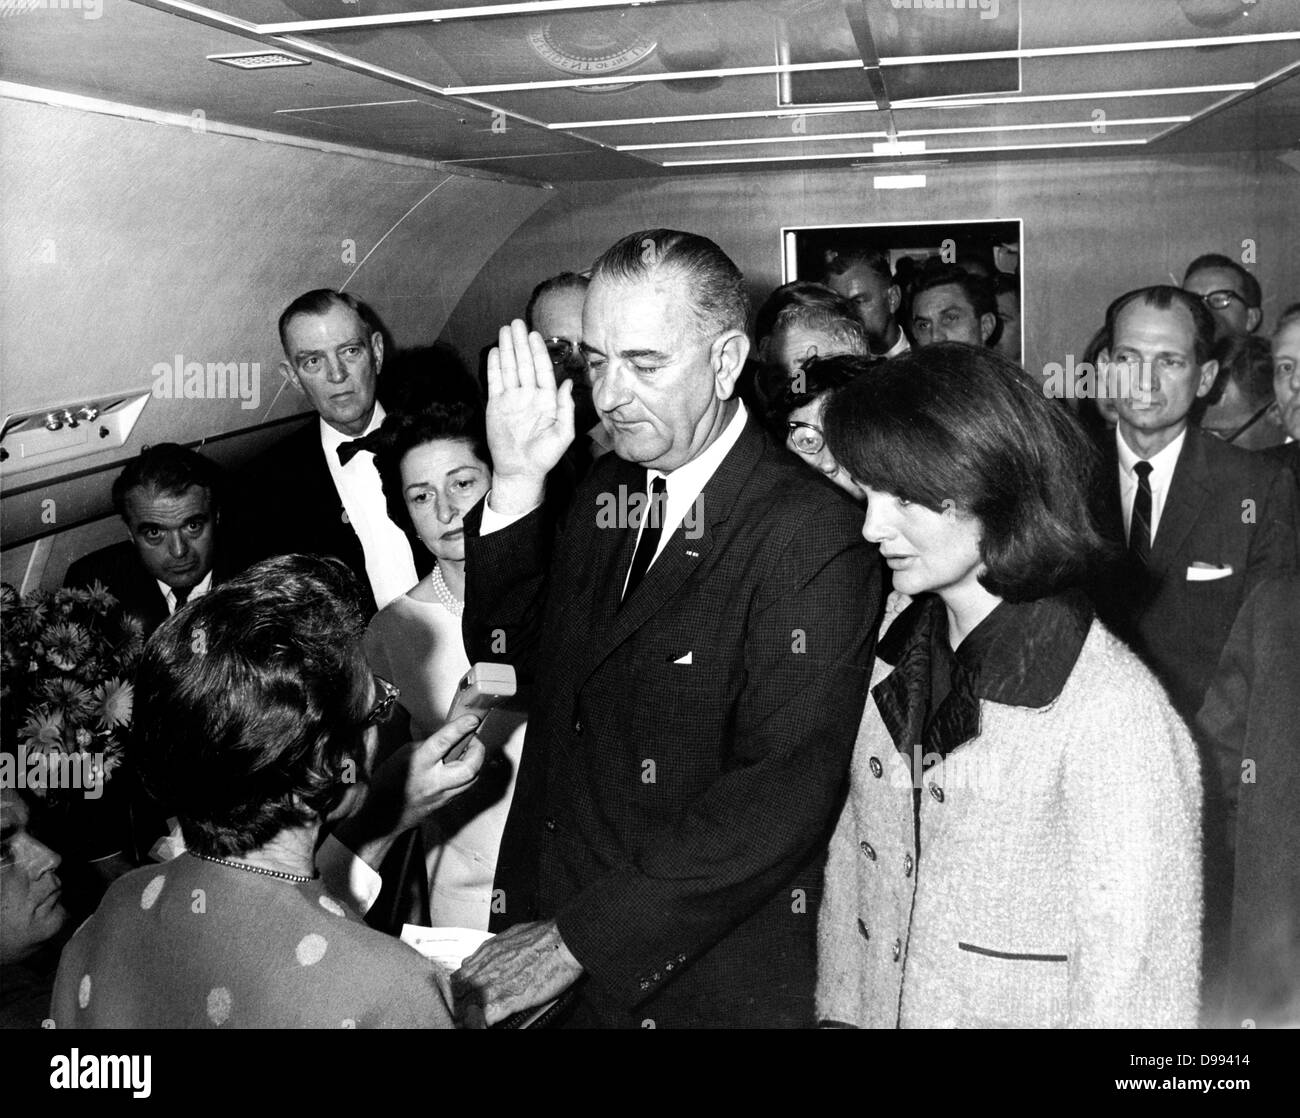 Lyndon Baines Johnson (1908 – 1973), referred to as LBJ, served as the 36th President of the United States from Stock Photo